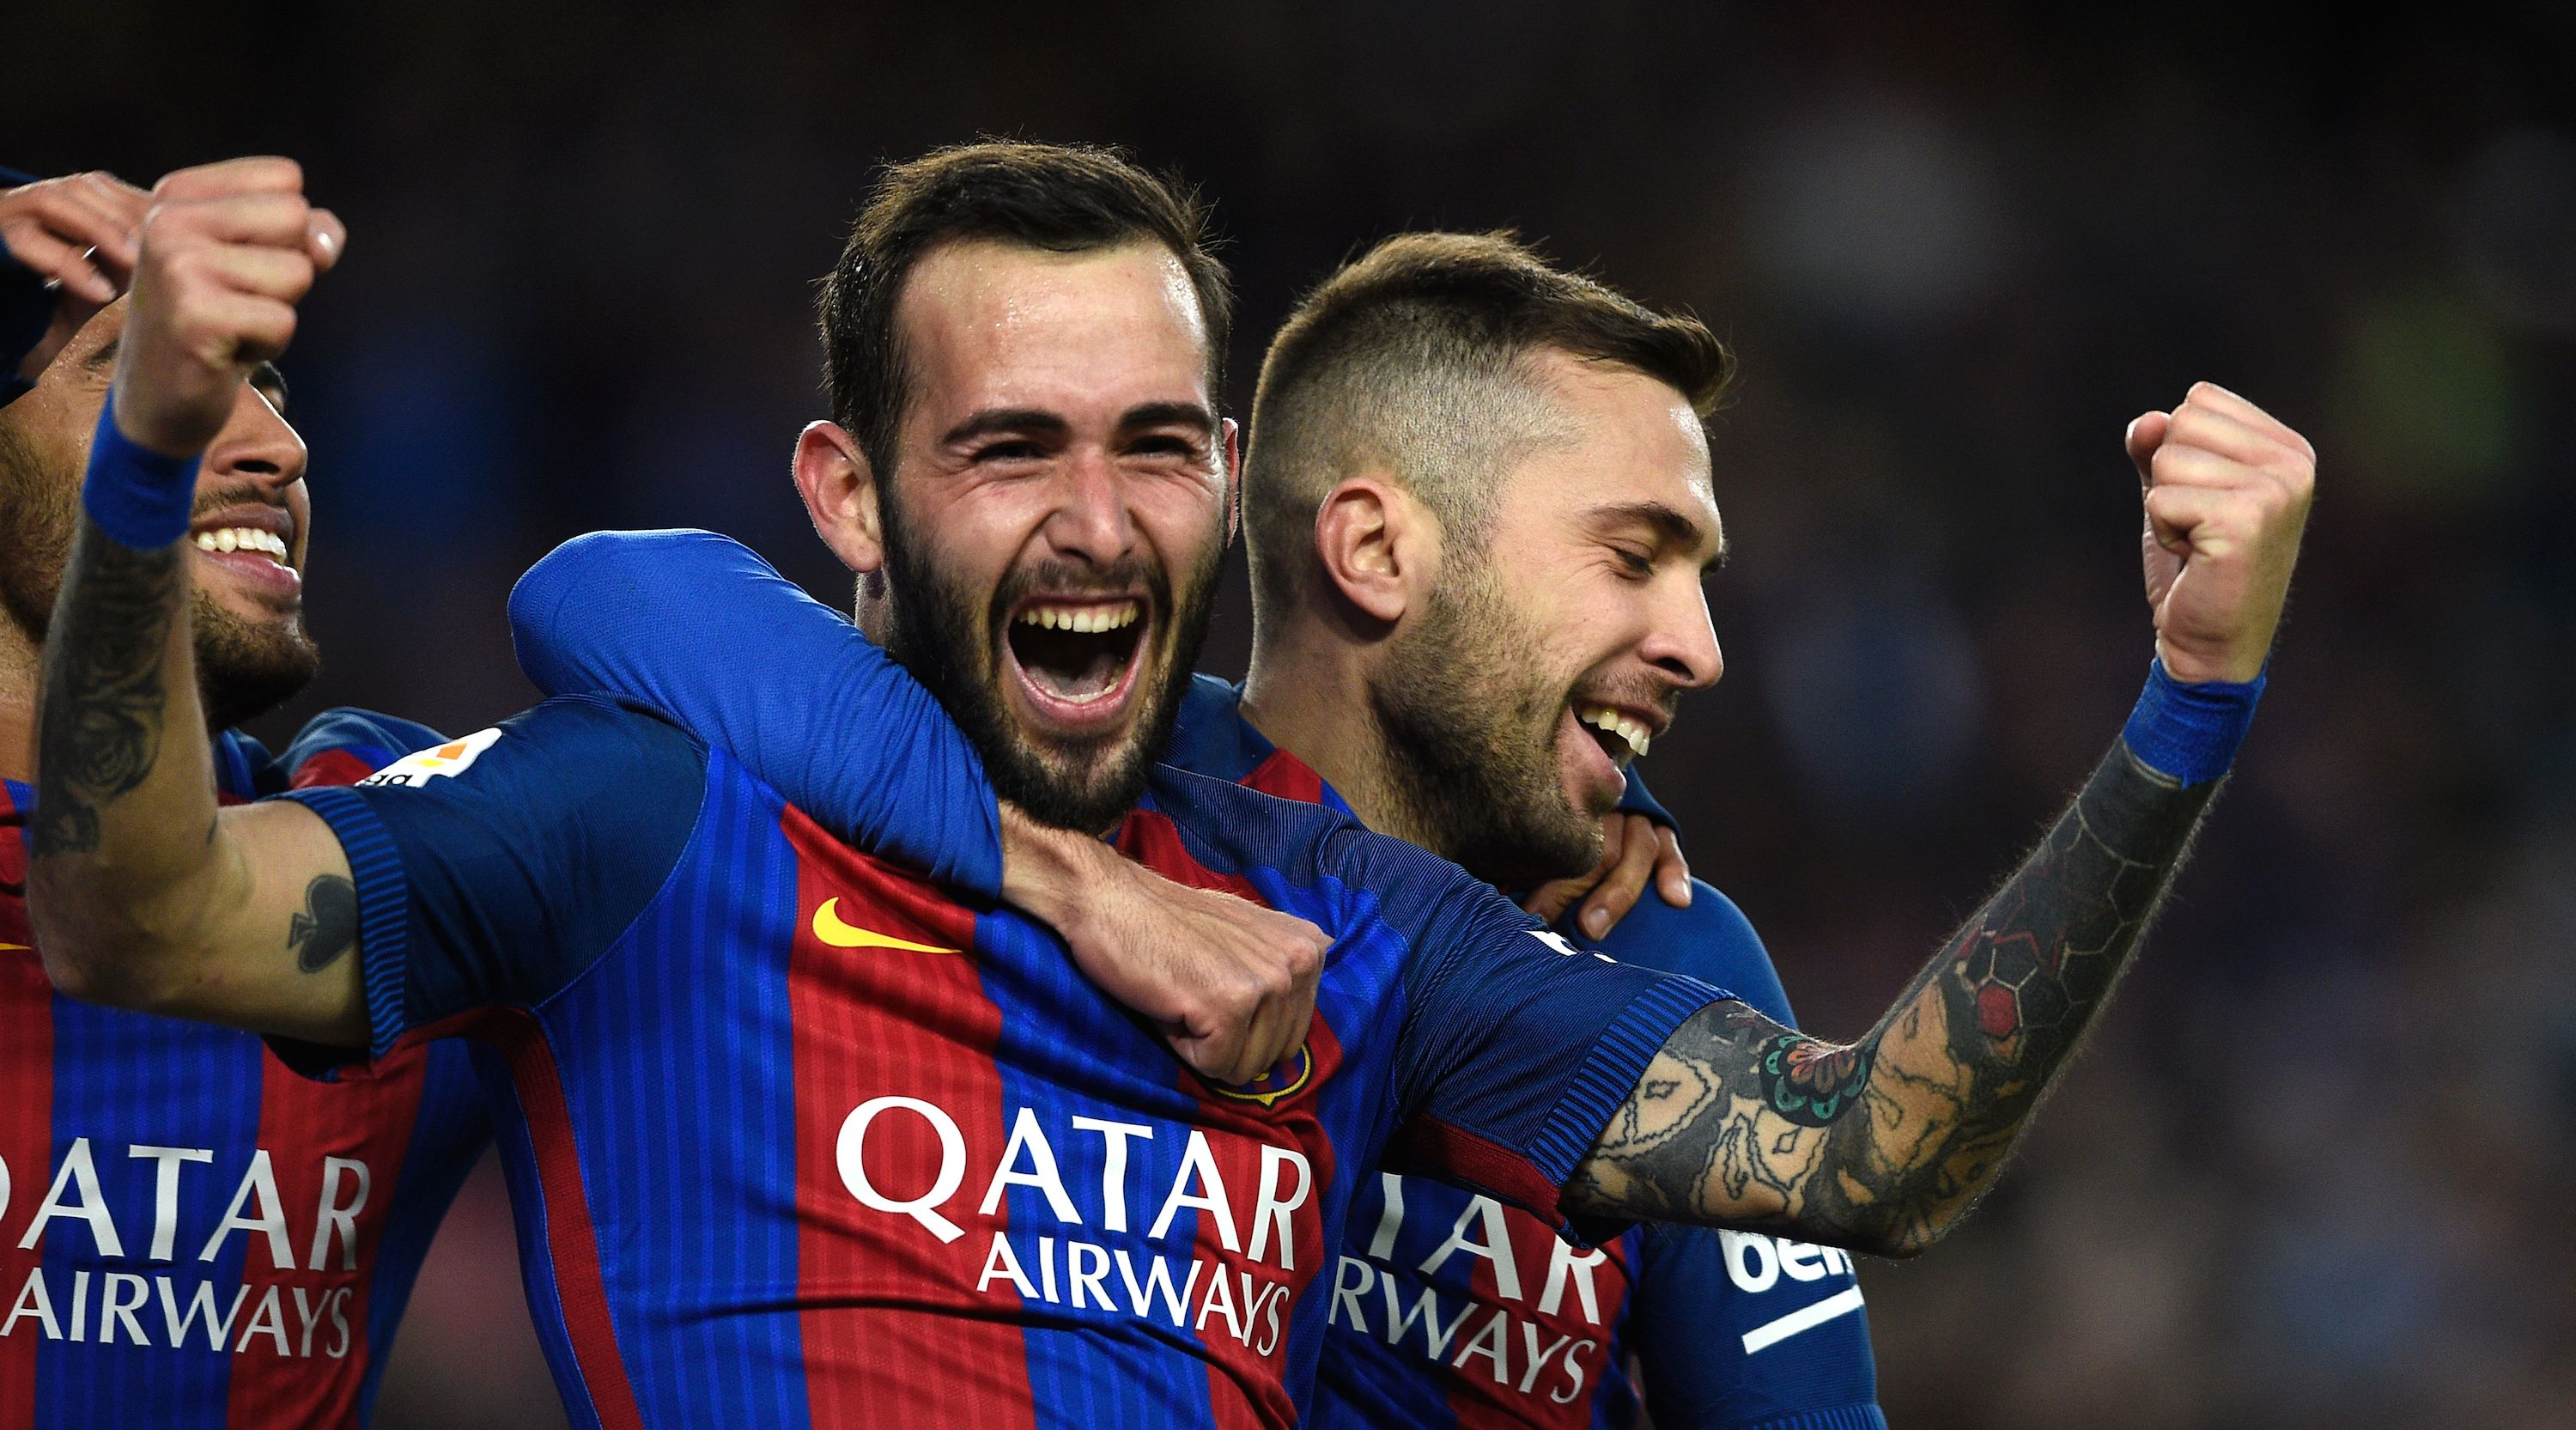 Barcelona's defender Aleix Vidal celebrates after scoring a goal during the Spanish league football match FC Barcelona vs UD Las Palmas at the Camp Nou stadium in Barcelona on January 14, 2017. / AFP / LLUIS GENE (Photo credit should read LLUIS GENE/AFP/Getty Images)